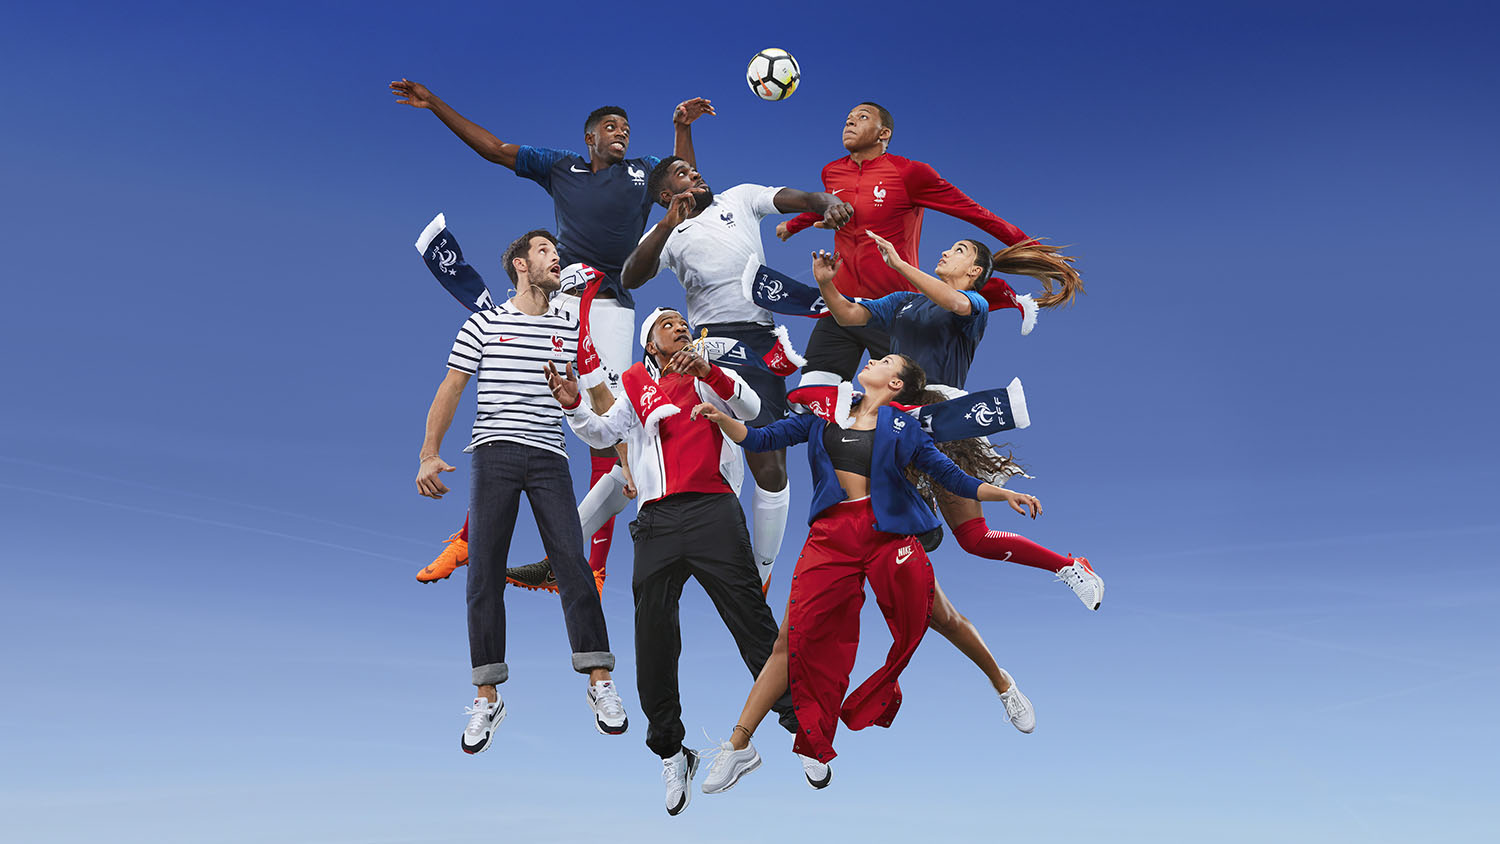 Photo de Jean-Paul Goude équipe de France 2018-2019